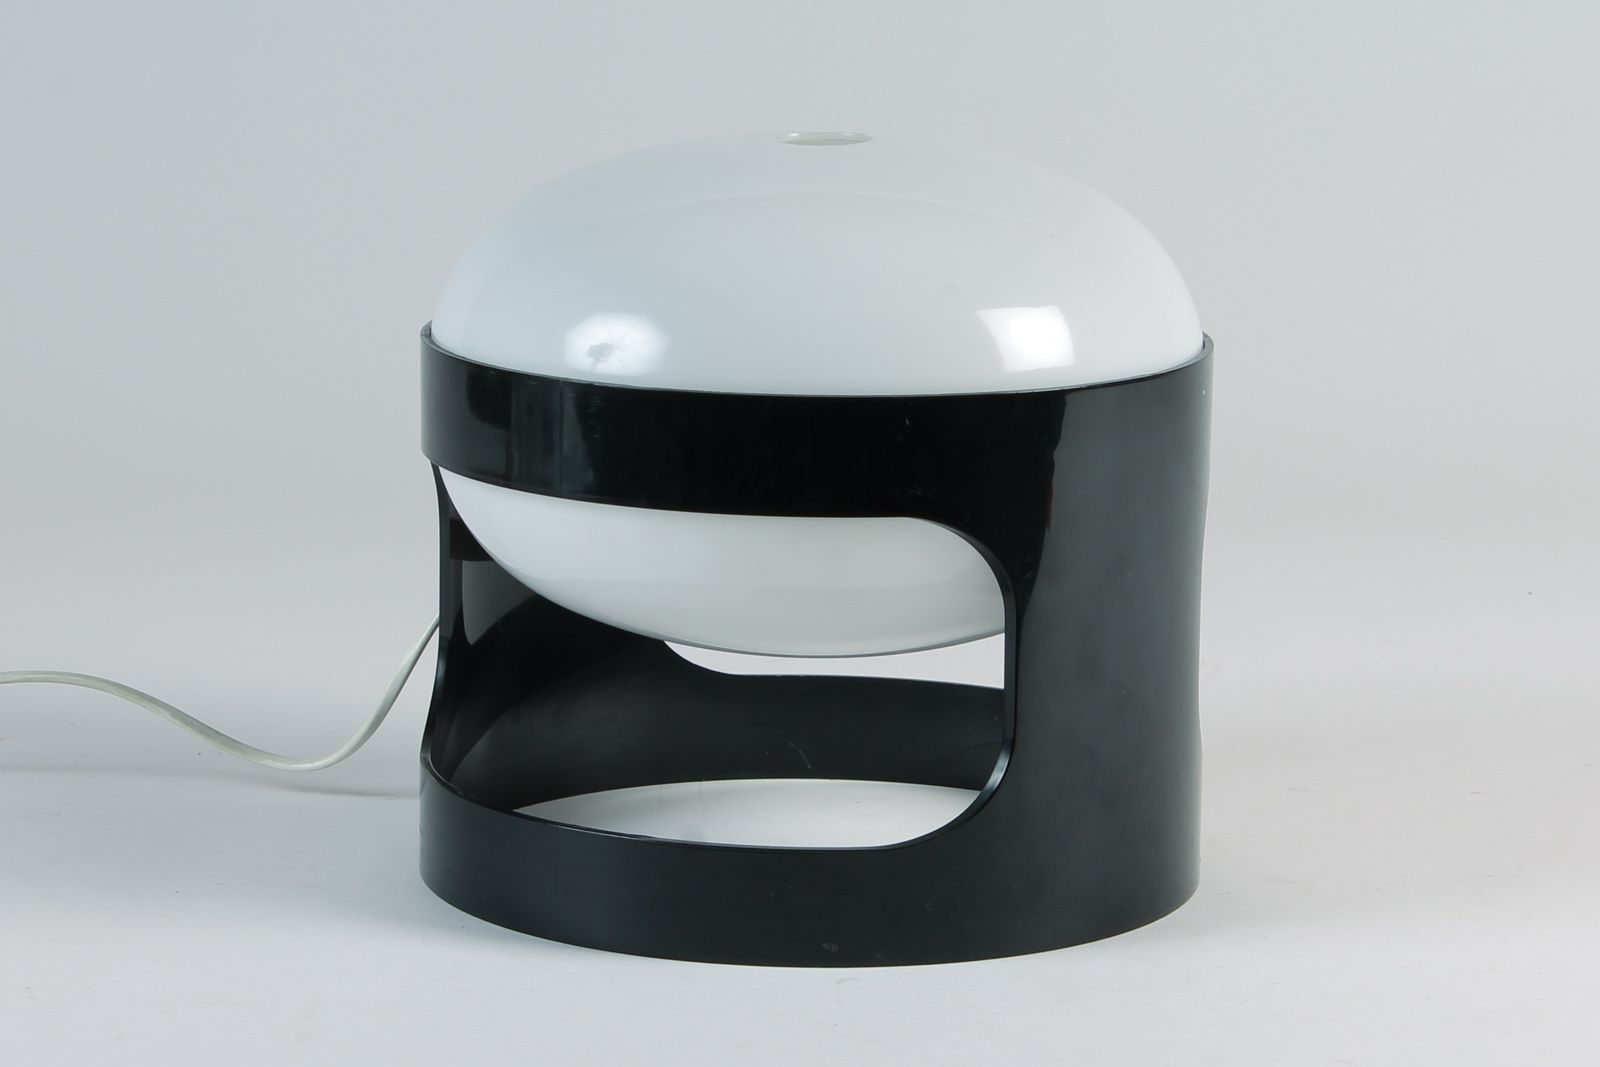 fabulous ordinary lampe kartell solde lampe kartell solde toulon modele soufflant lampe with. Black Bedroom Furniture Sets. Home Design Ideas